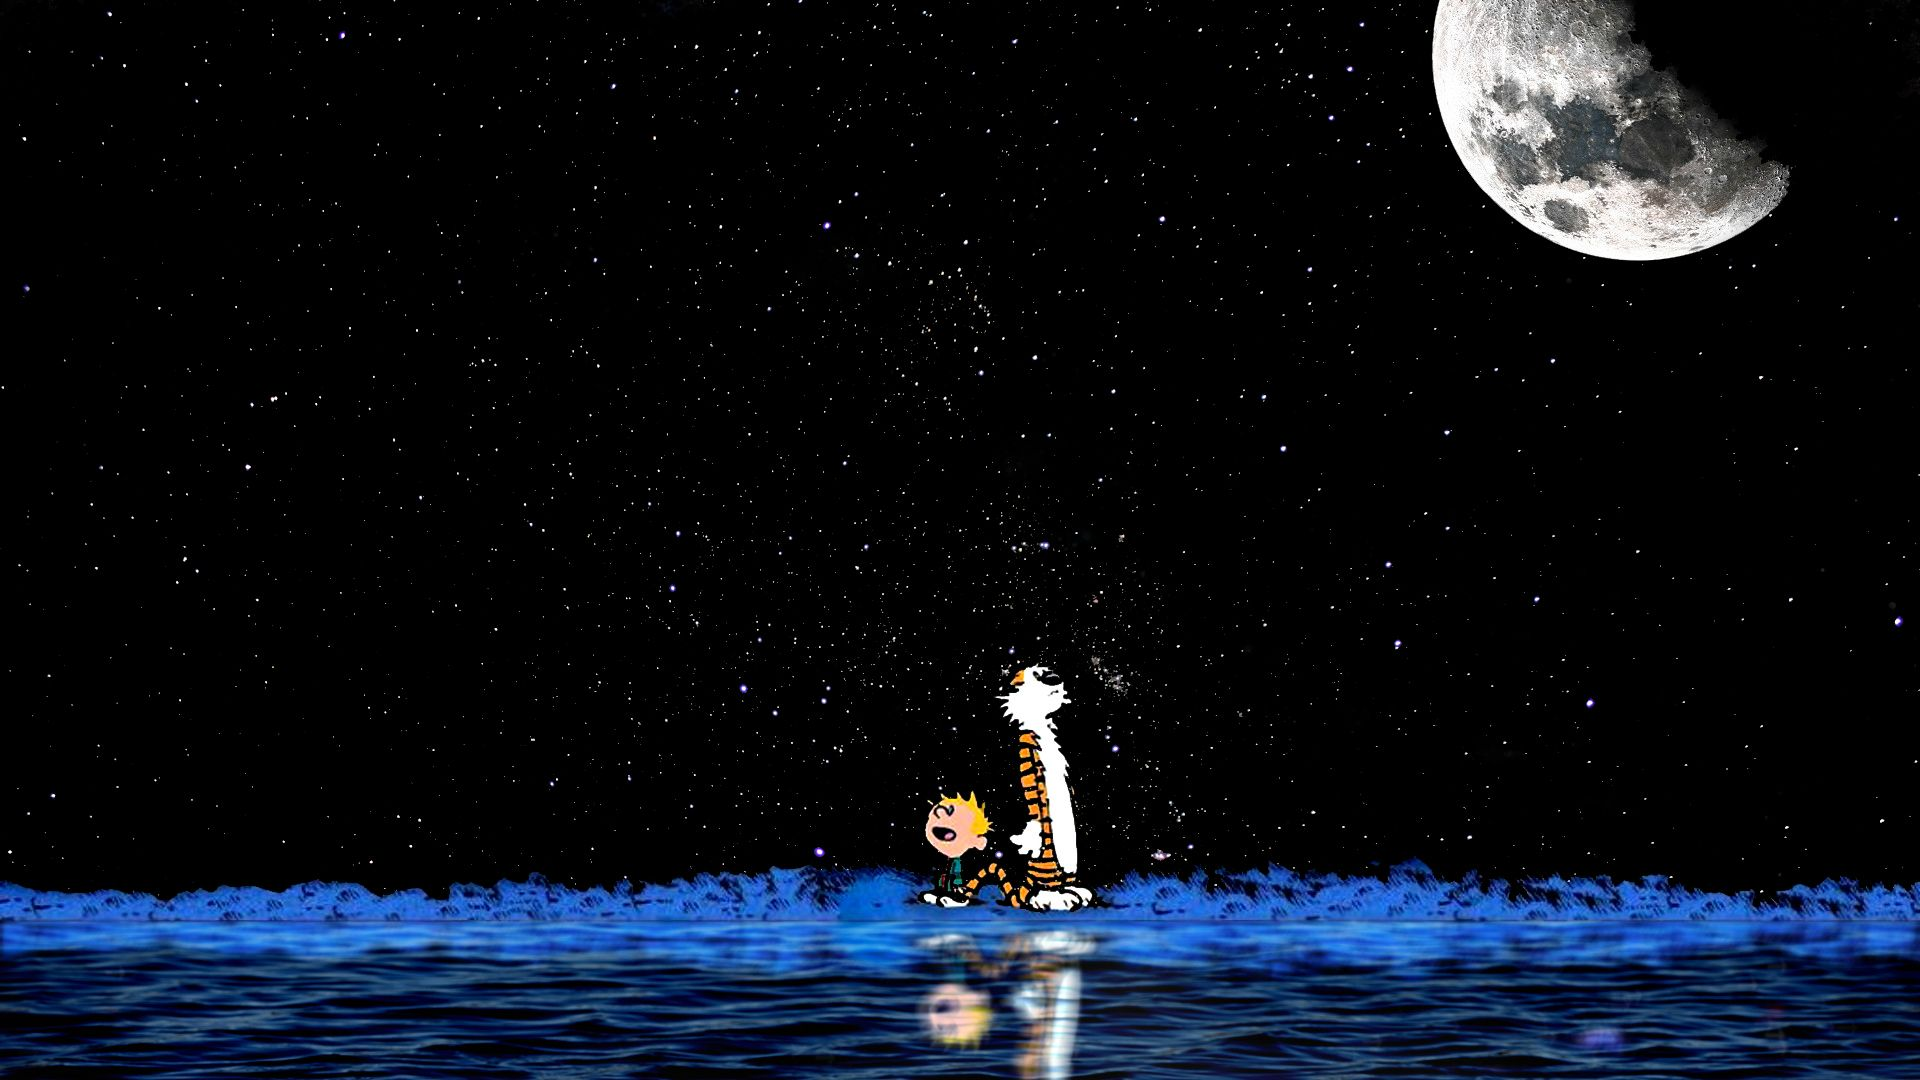 Wallpapers Calvin And Hobbes Posted By Sarah Johnson